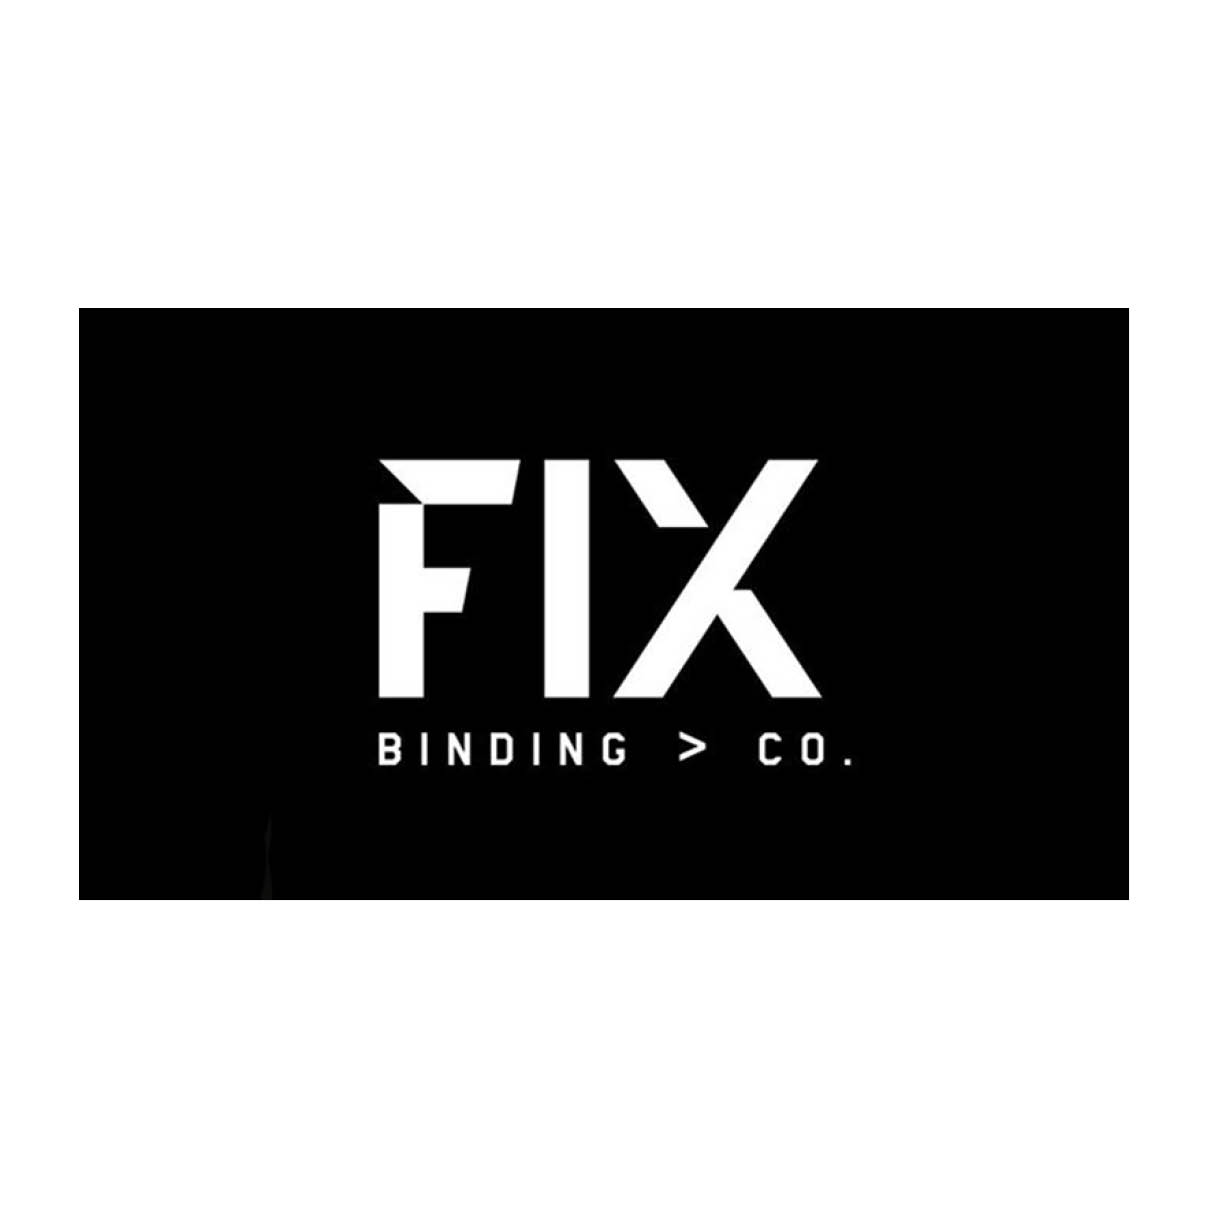 FIX Bindings